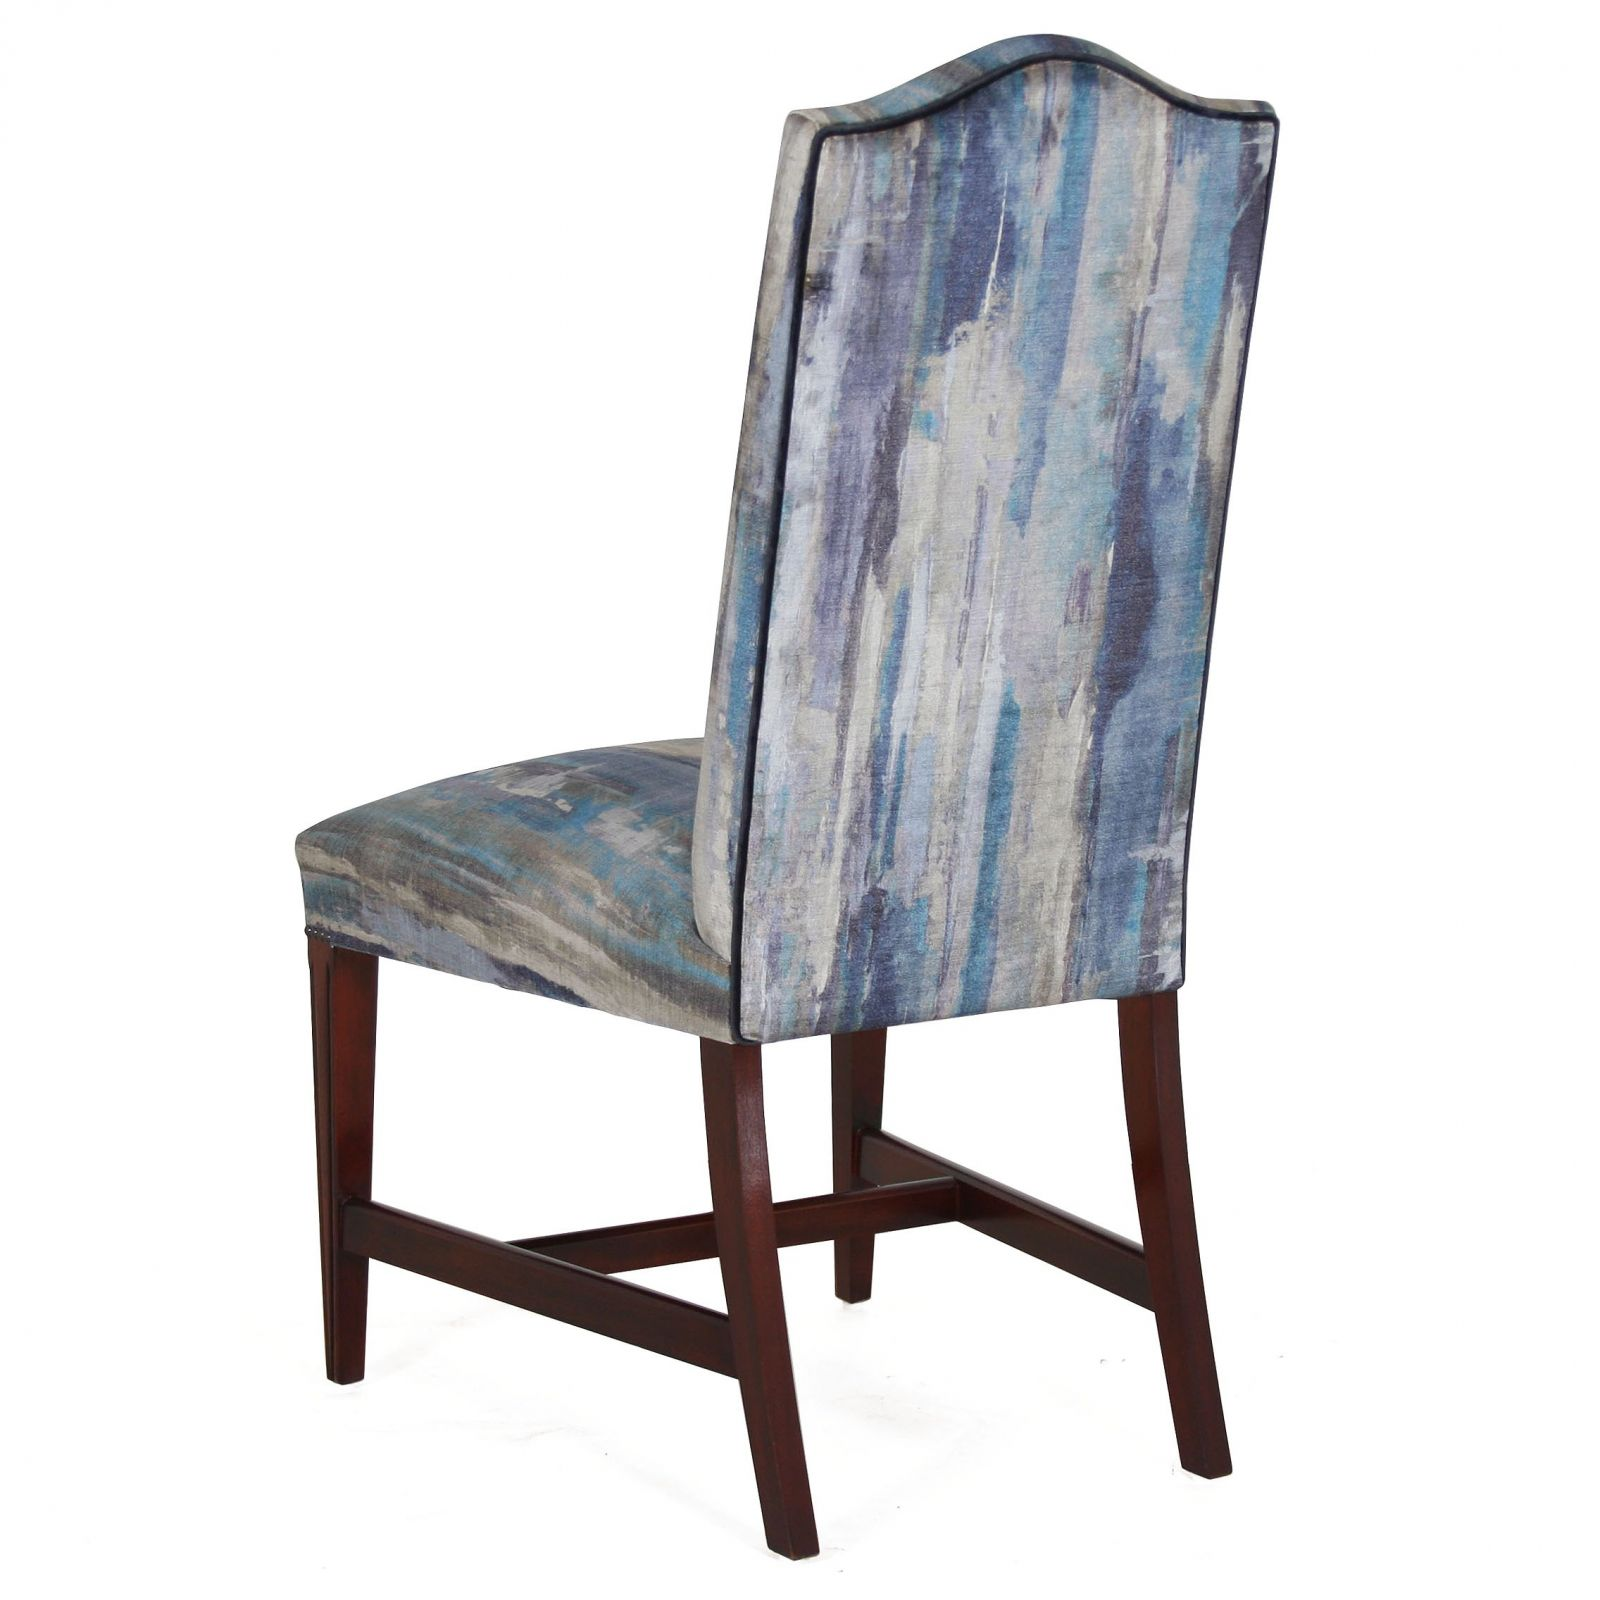 Mahogany upholstered back dining chair in Wemyss Monviso